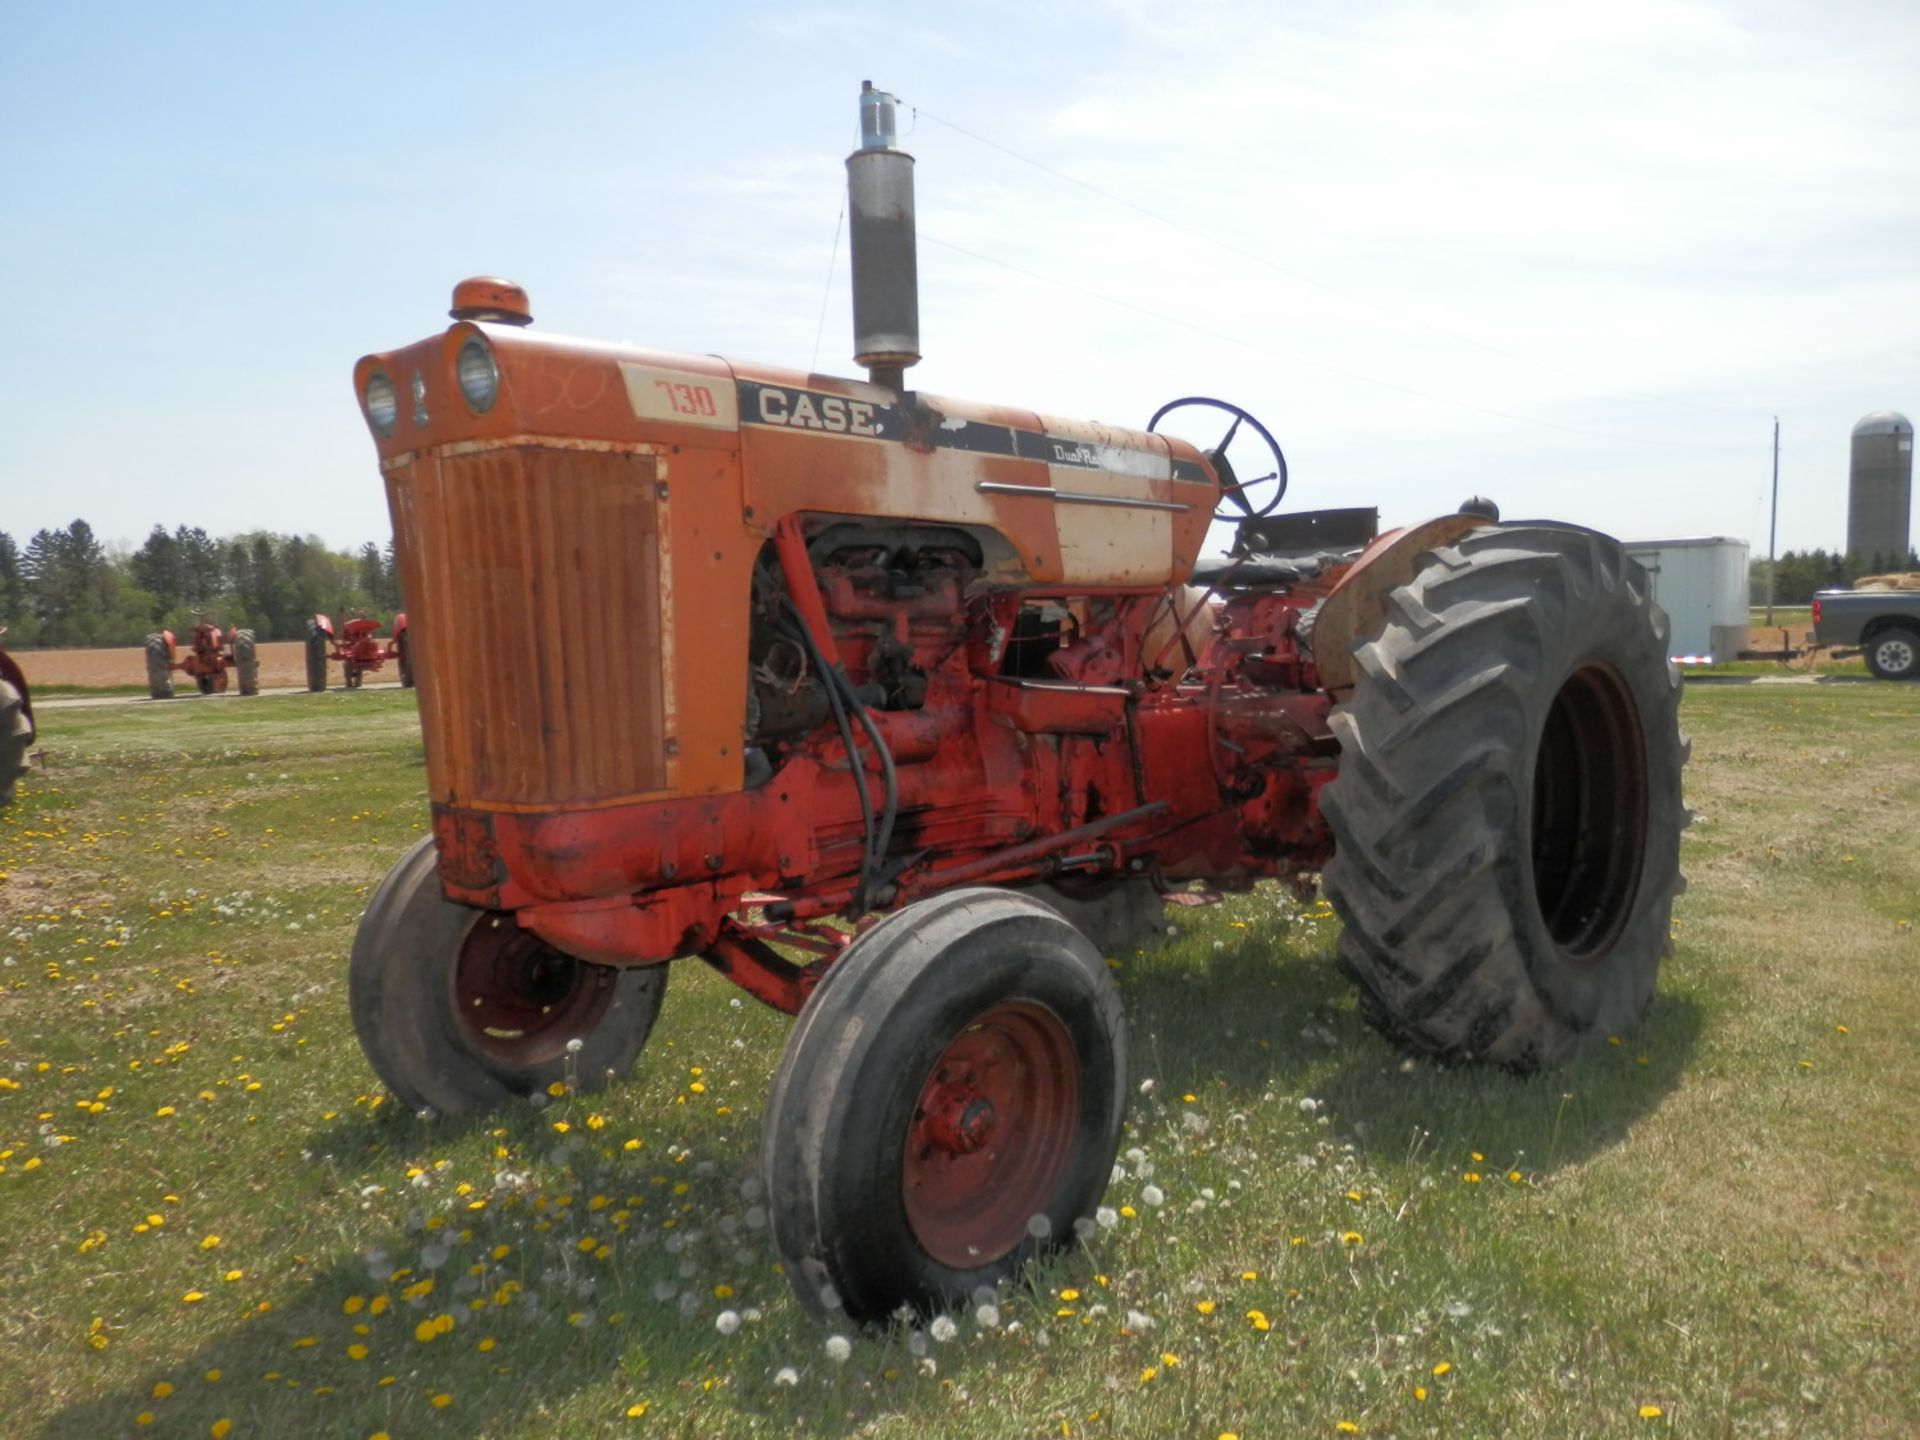 JI CASE 730 GAS TRACTOR - Image 3 of 10